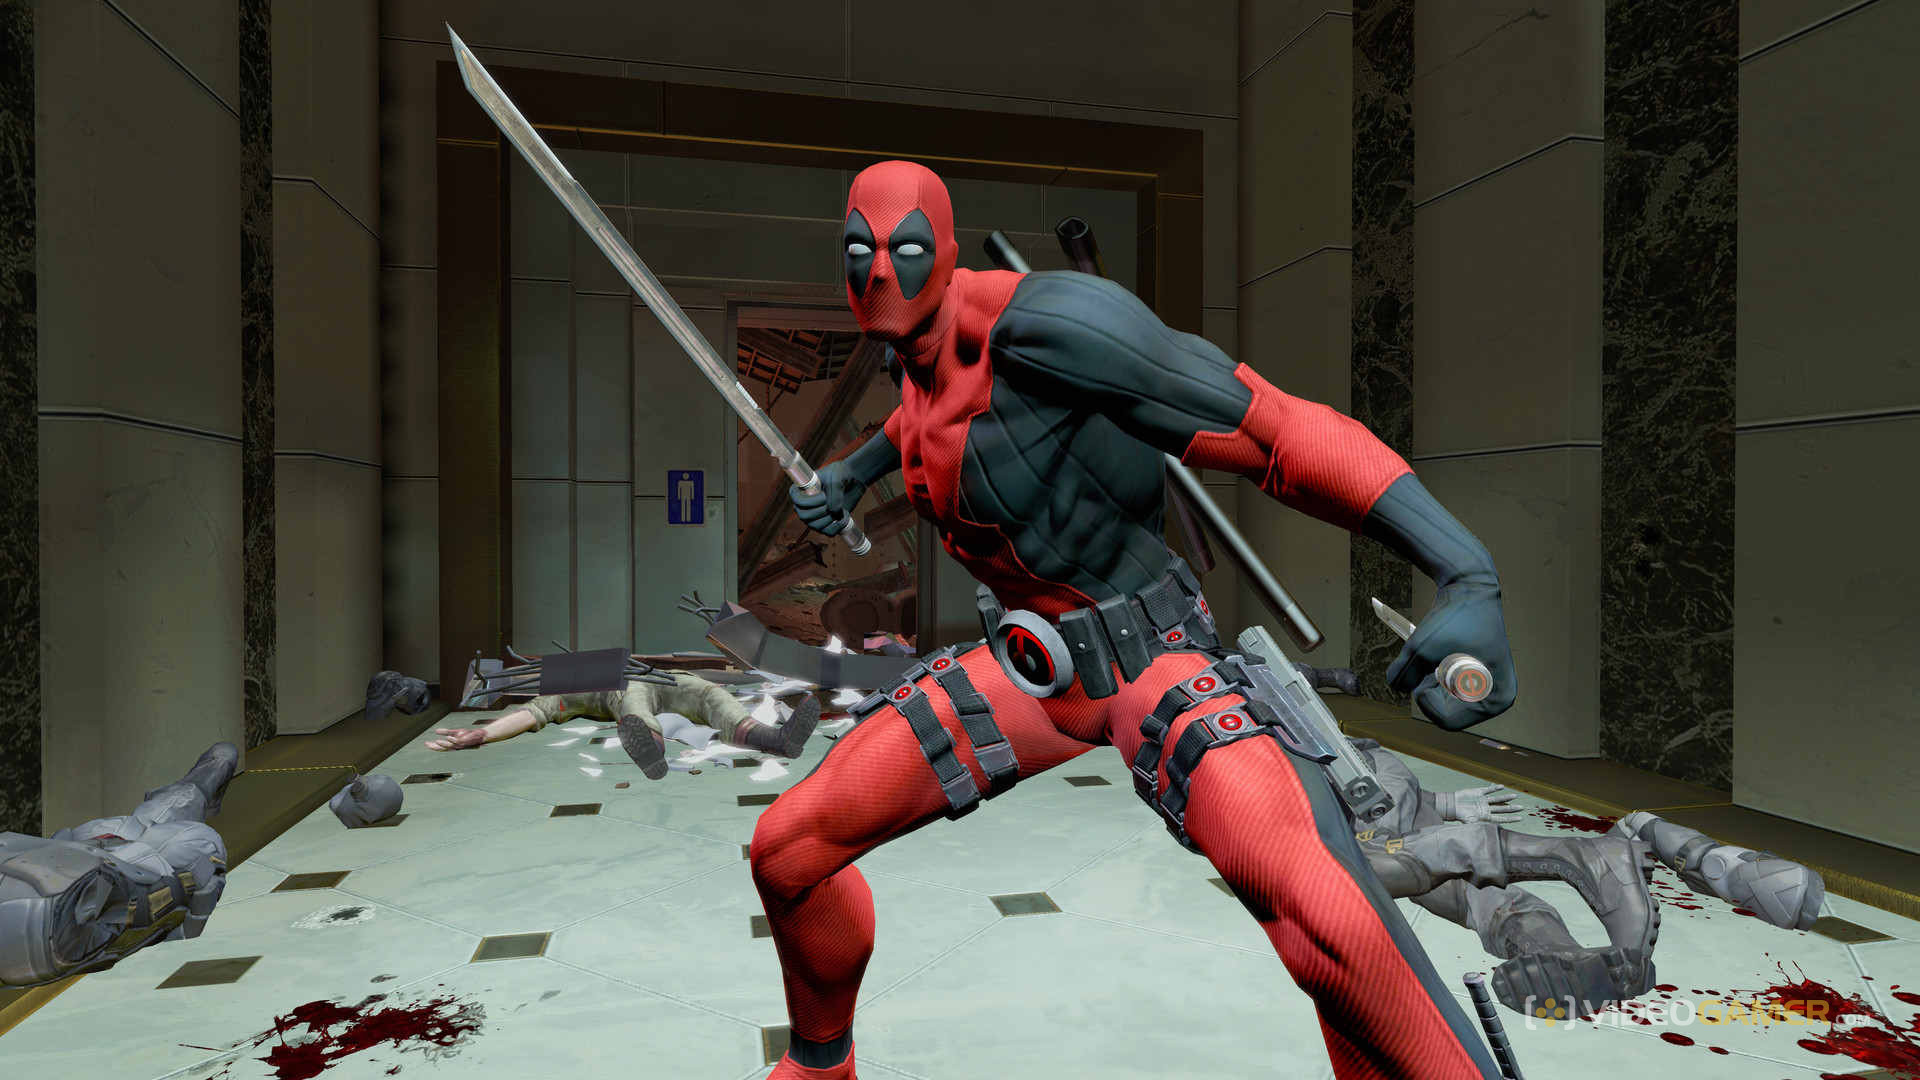 Deadpool screenshot 8 for Xbox 360   VideoGamercom 1920x1080